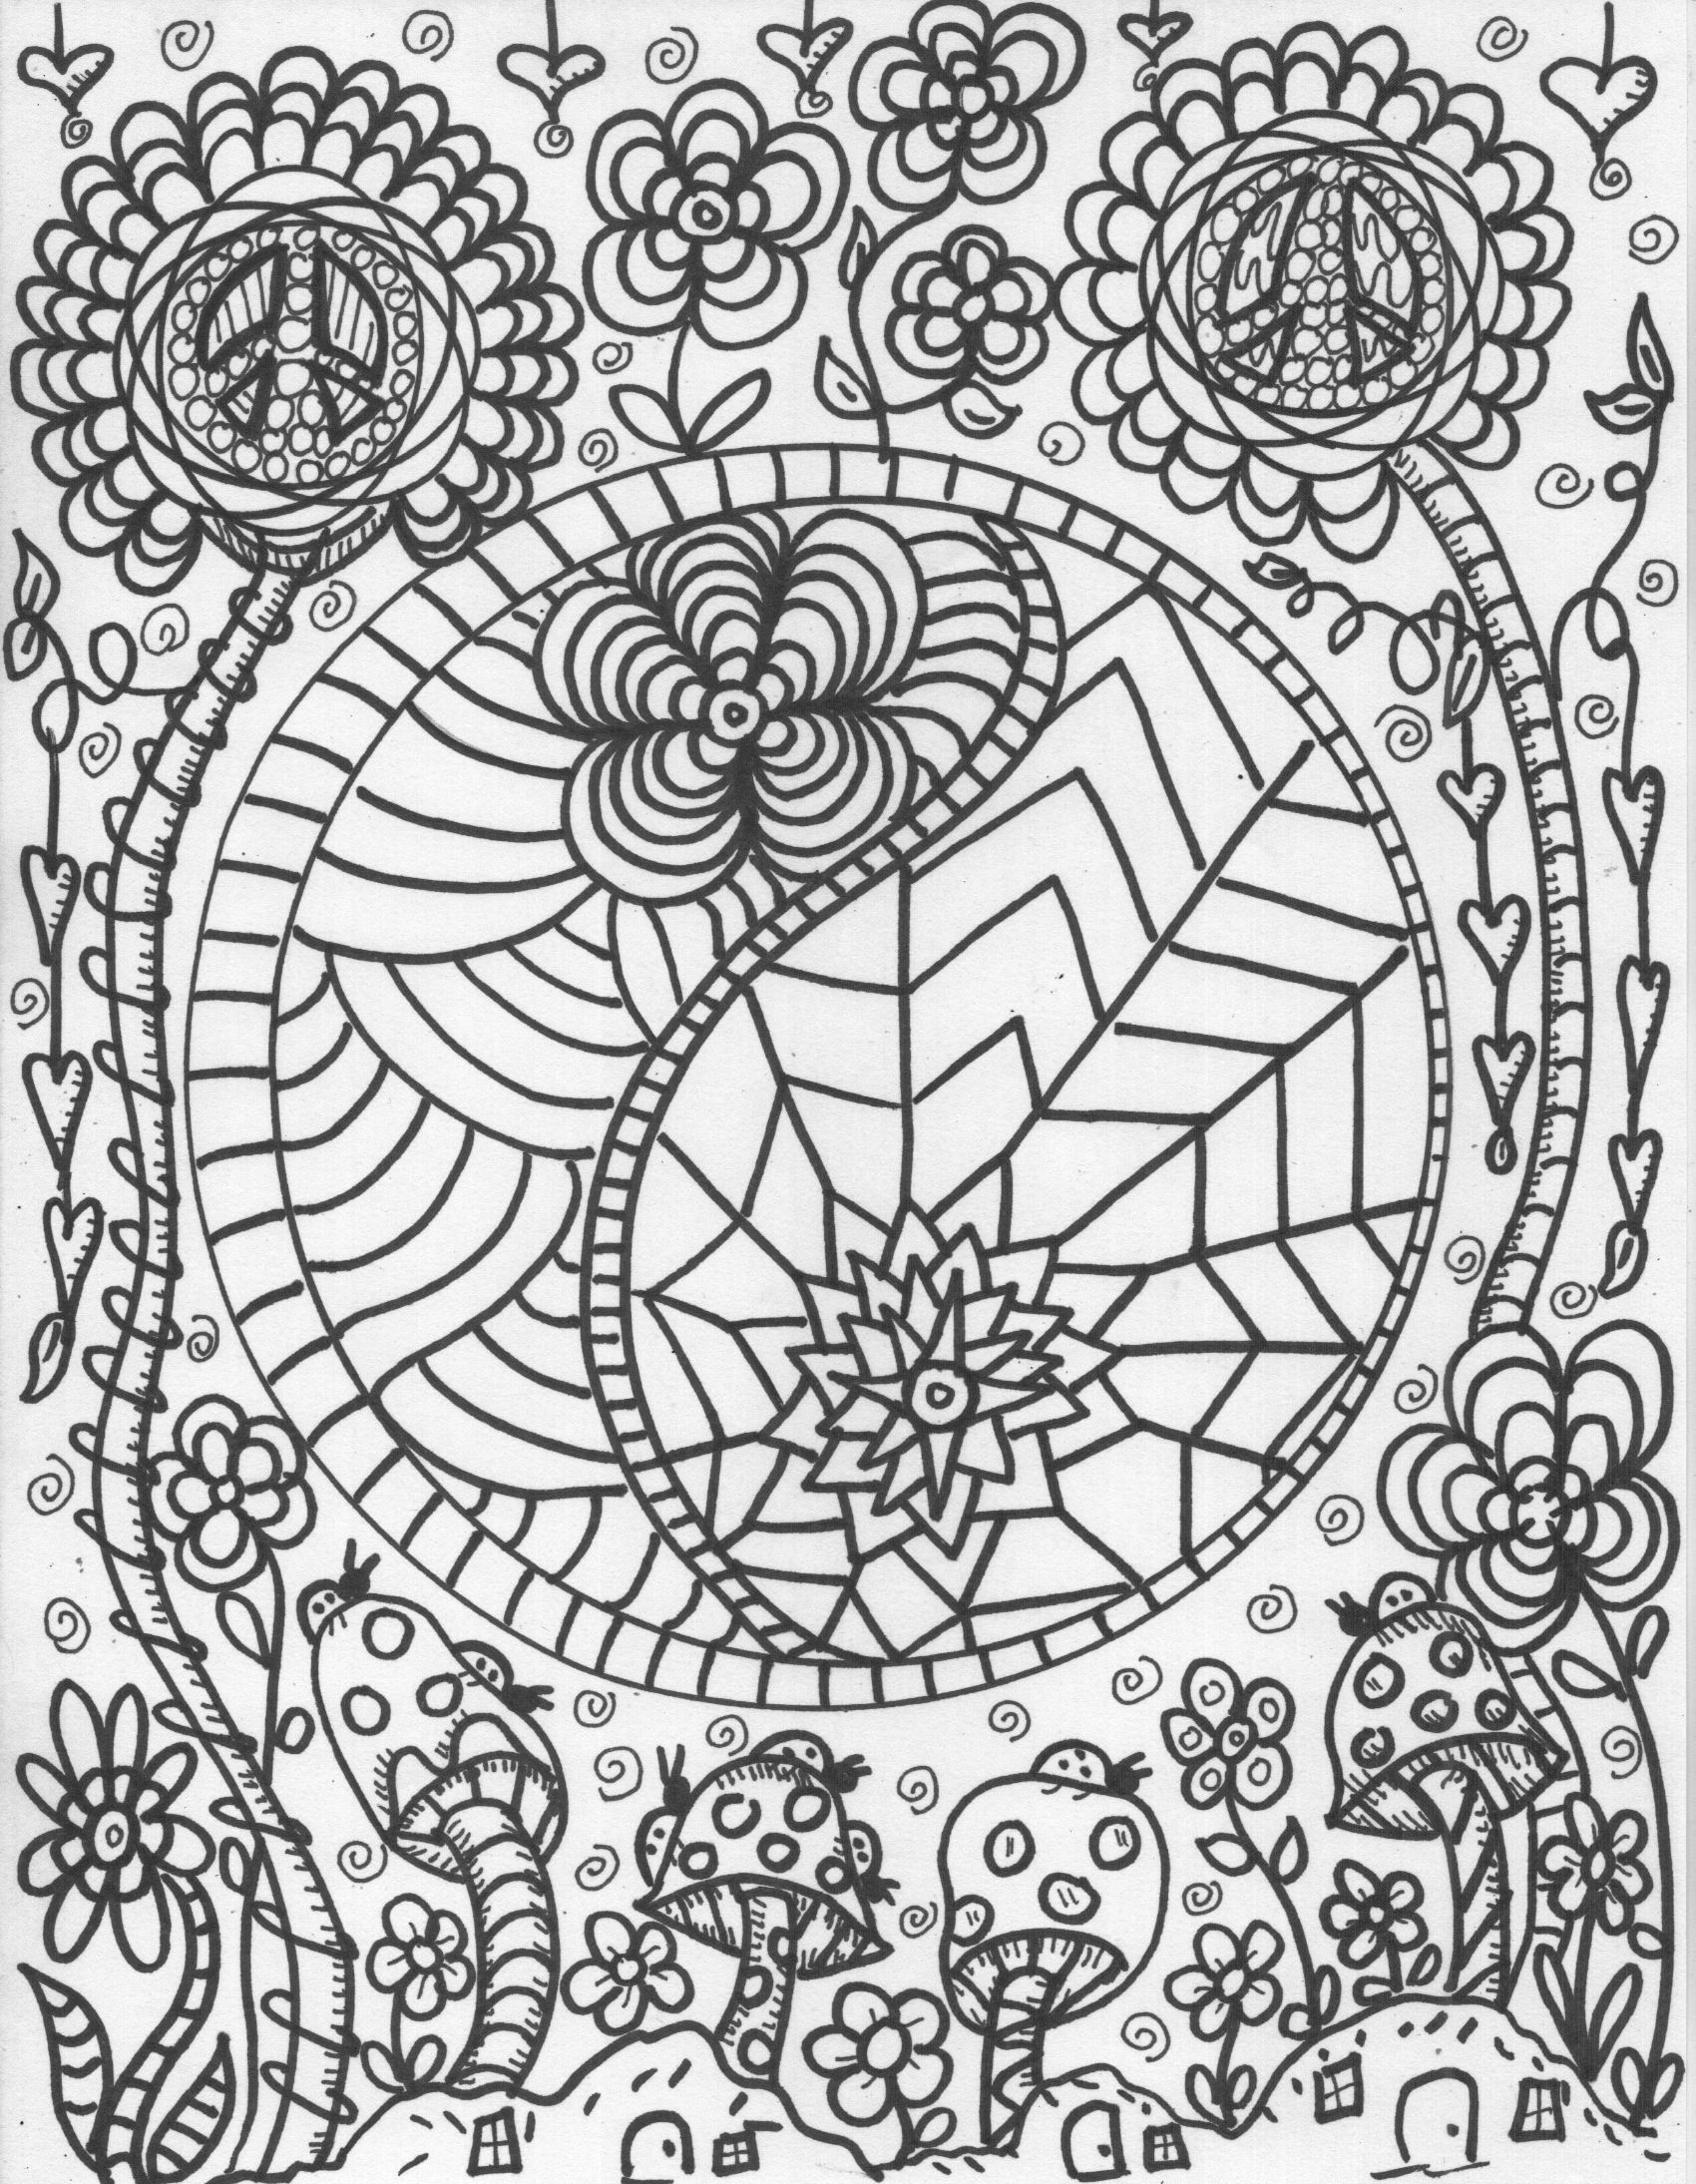 abstract doodle zentangle coloring pages colouring adult detailed advanced printable kleuren voor volwassenen coloriage pour adulte - Coloring Pg